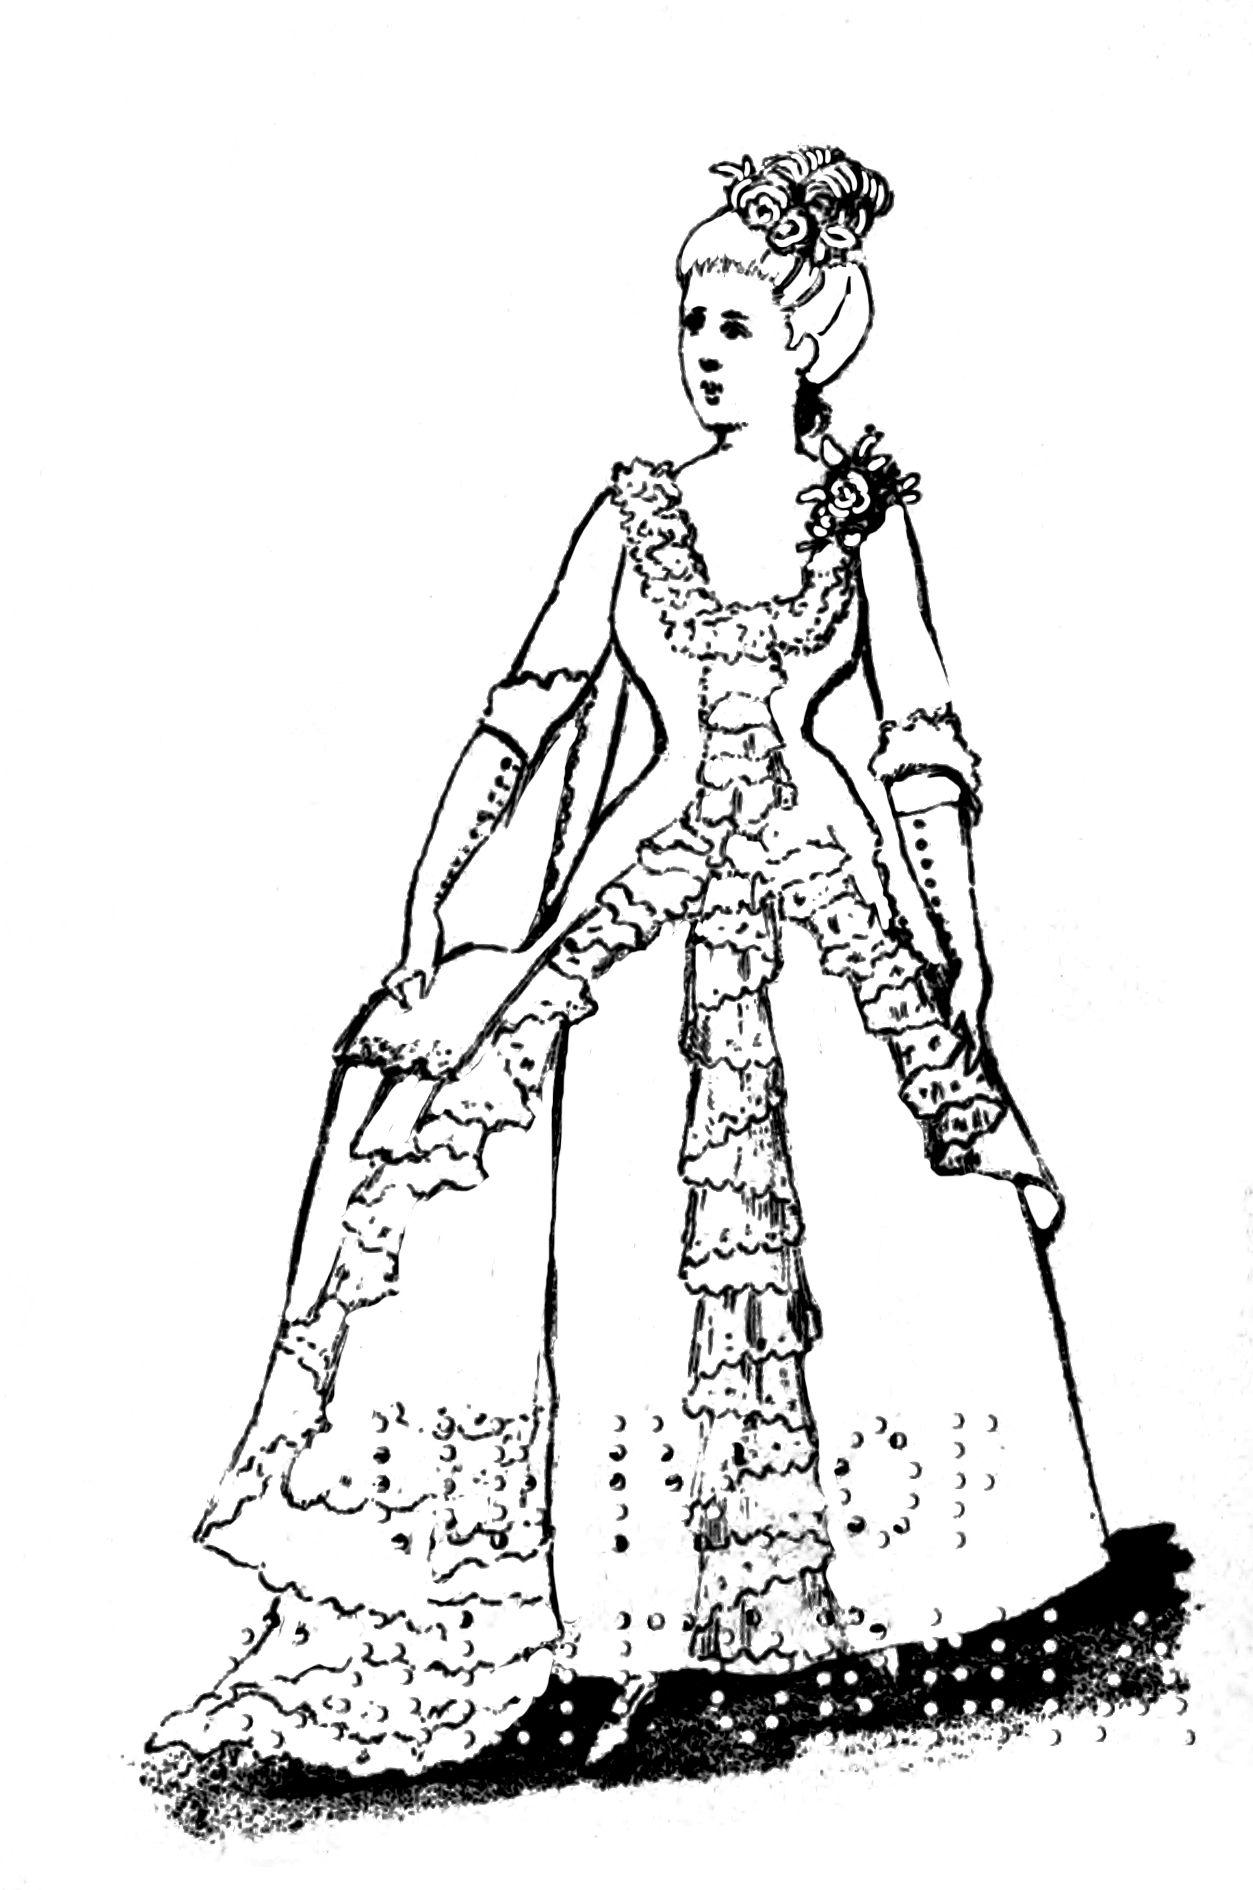 Victoria coloring dresses victorian clothes colouring pages page 2 - Victoria Coloring Dresses Victorian Clothes Colouring Pages Page 2 19